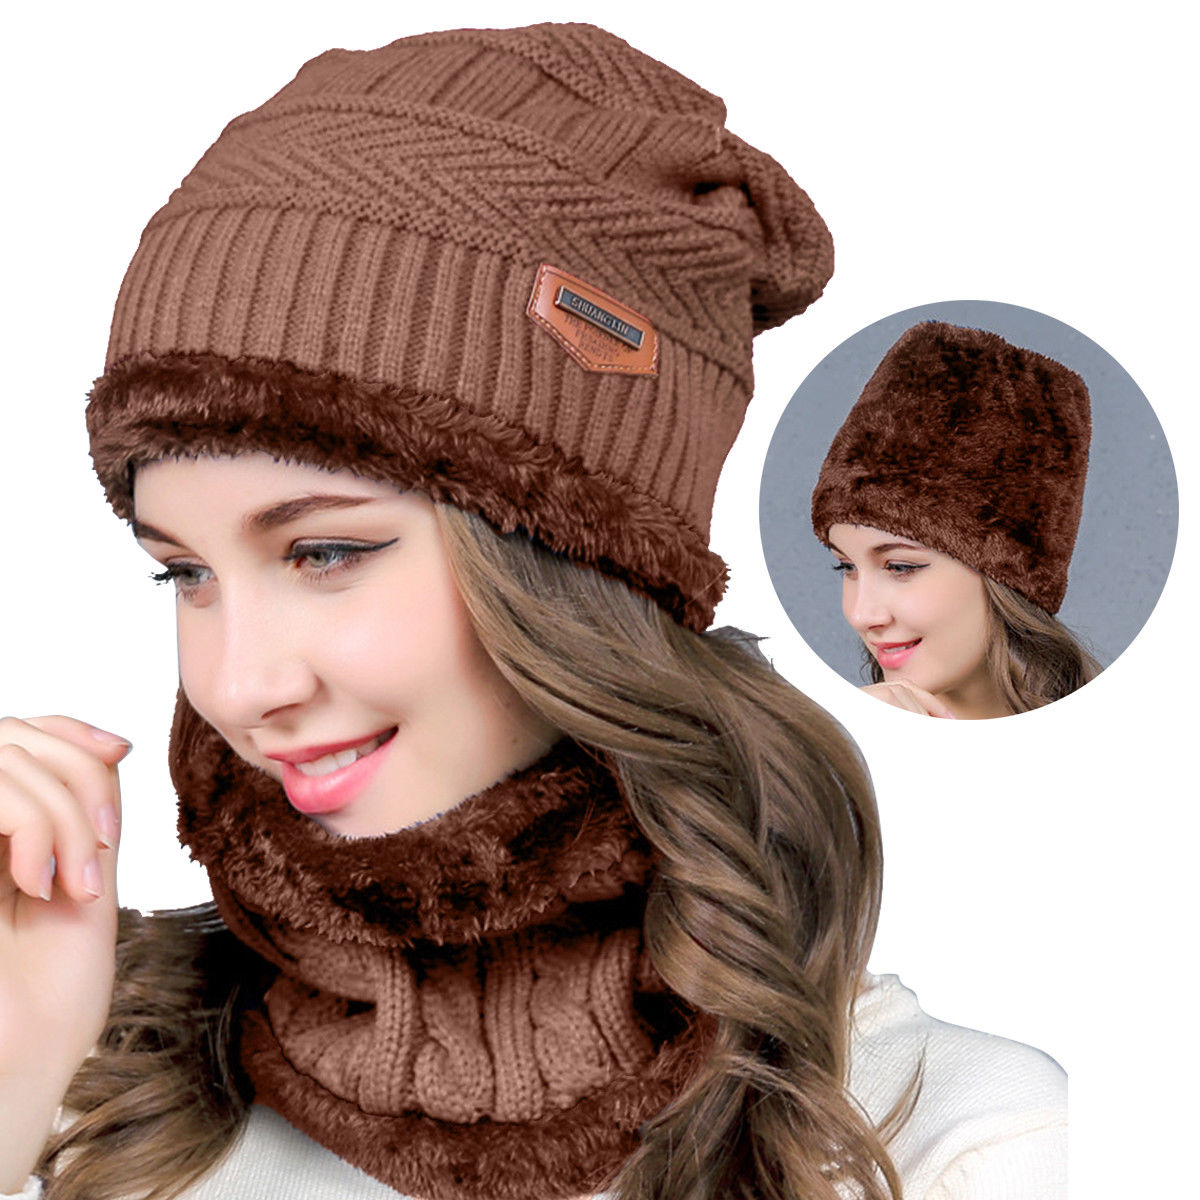 Apparel Accessories Romantic Knitted Hat Scarf Winter Skullies Beanies Female Winter Hats For Women Men Baggy Ring Warm Thicken Fashion Cap Hats 2018